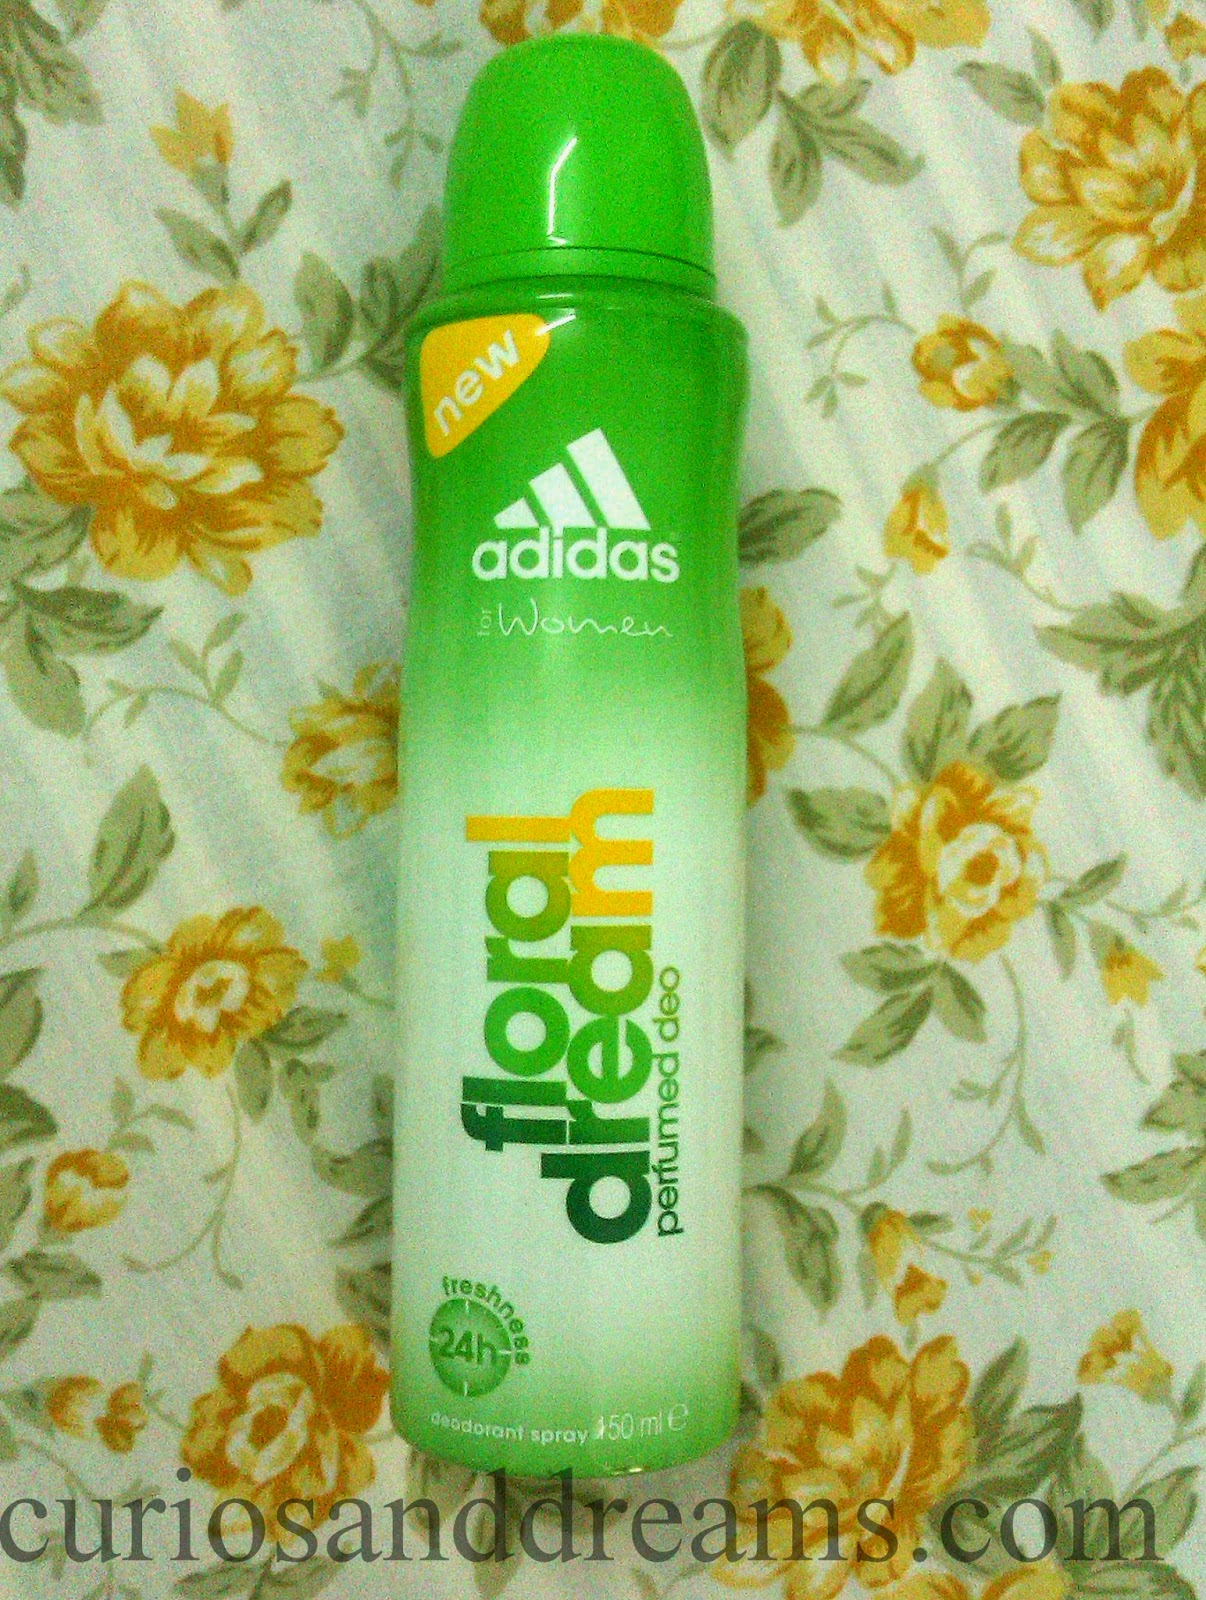 Adidas Floral Dream Deodorant Review